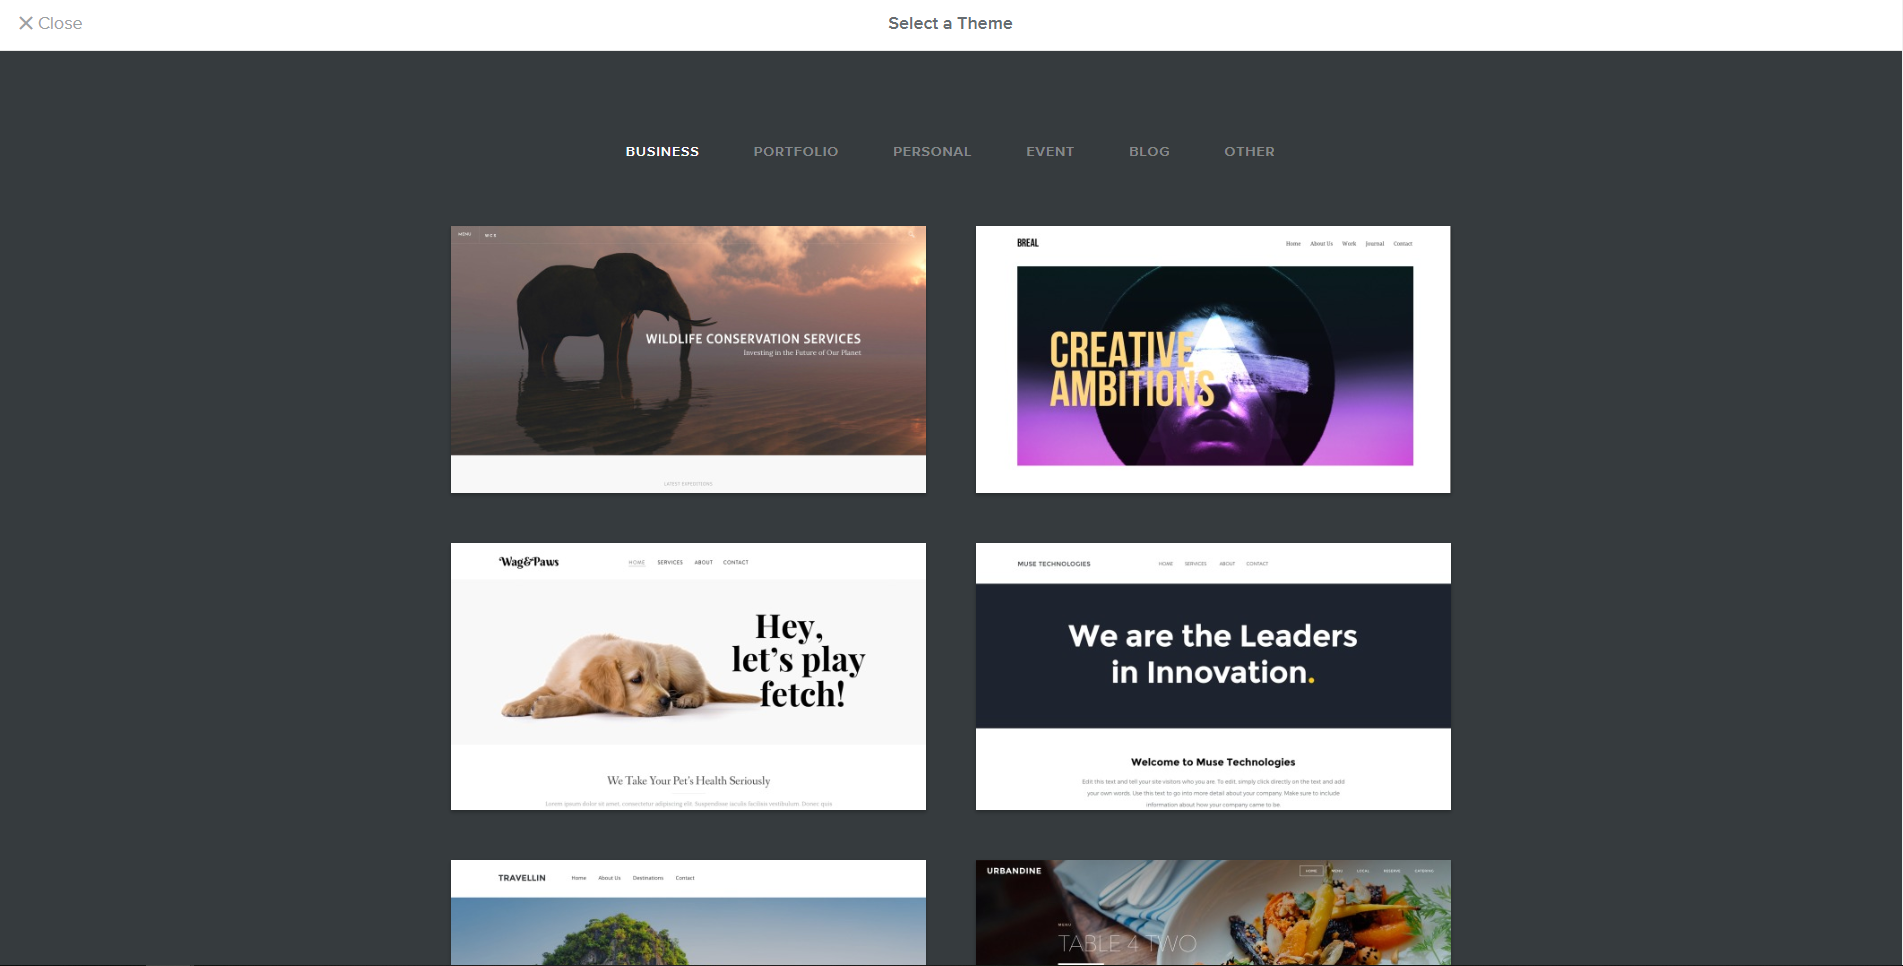 You Can Find Several Themes From Website Builders That Work For Your Business